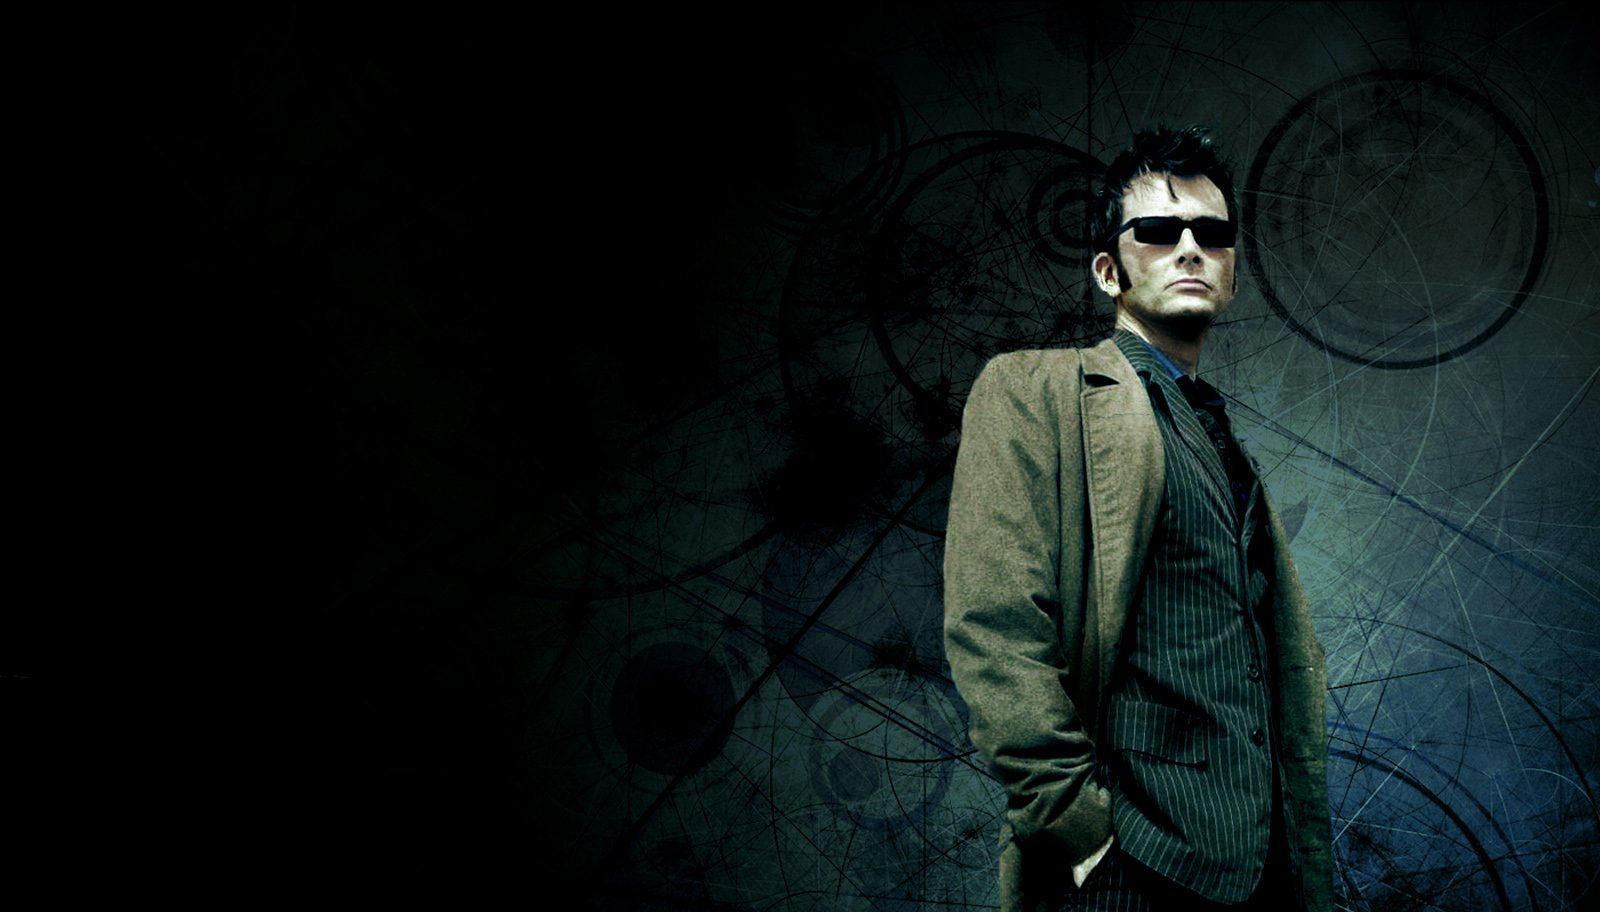 David Tennant Doctor Who HD Photo Wallpapers Desktop Wallpapers 1600x912